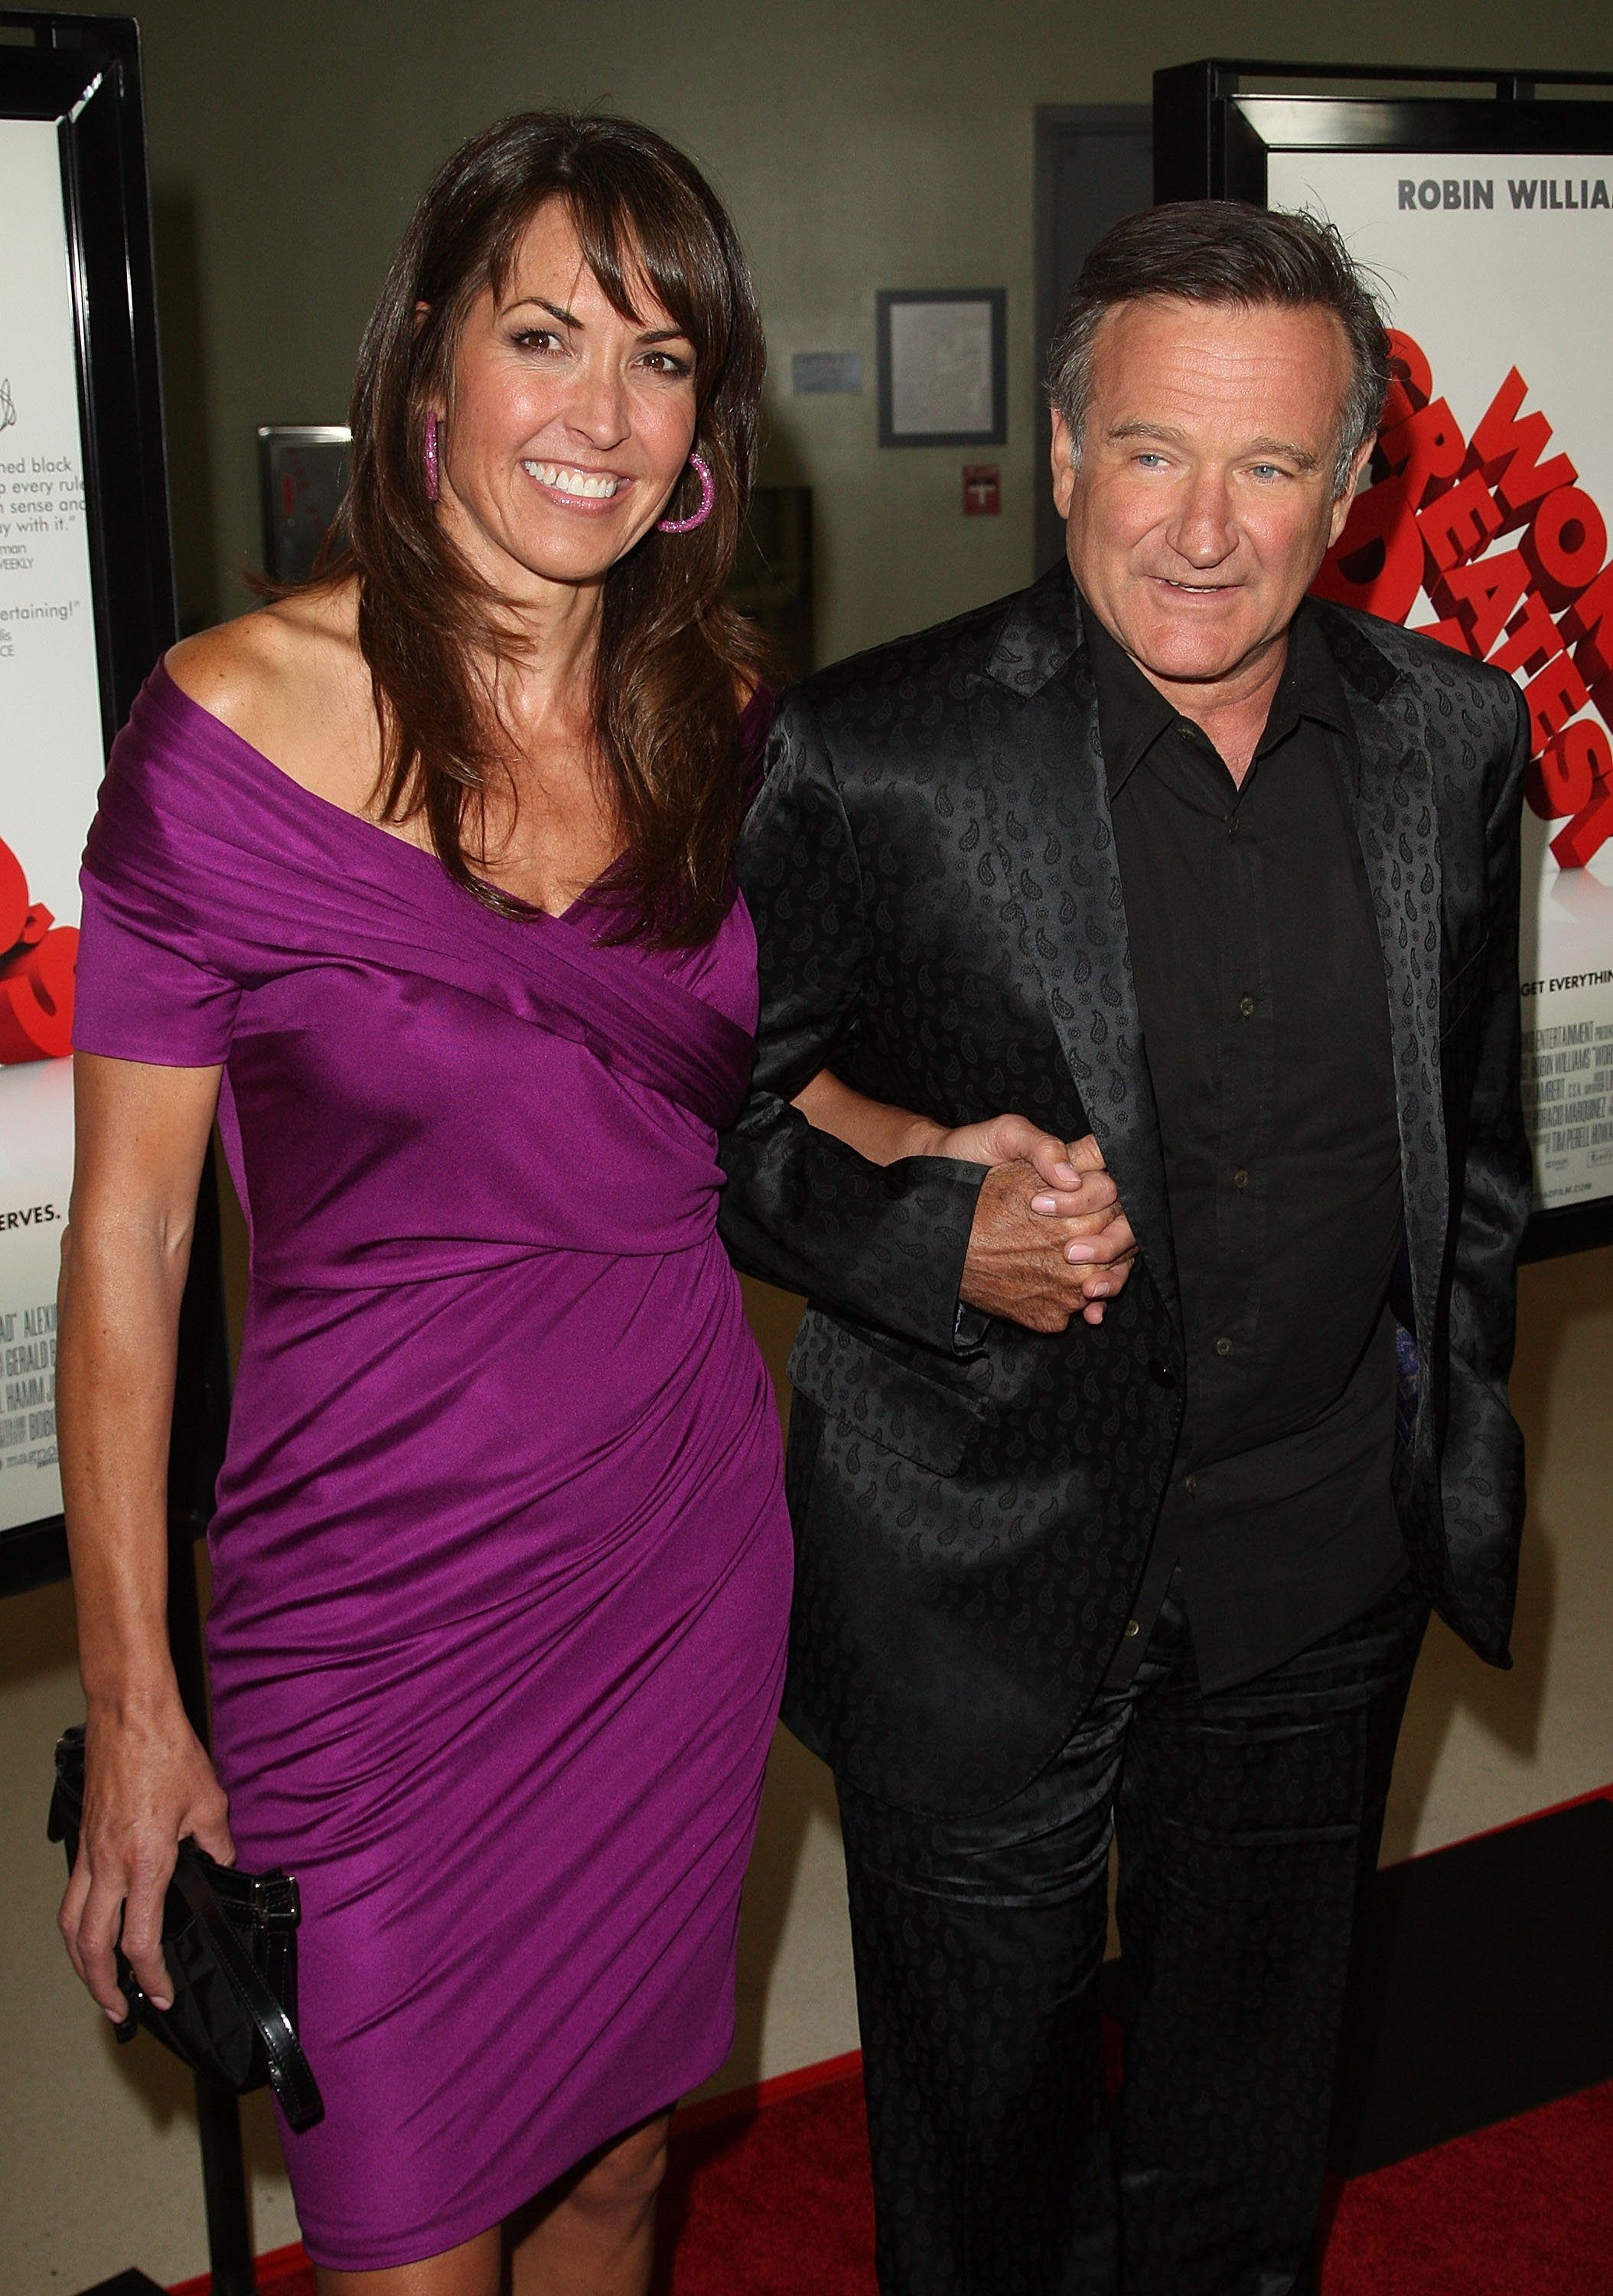 Robin Williams and Susan Schneider on August 13, 2009 in Los Angeles, California | Photo: Getty Images